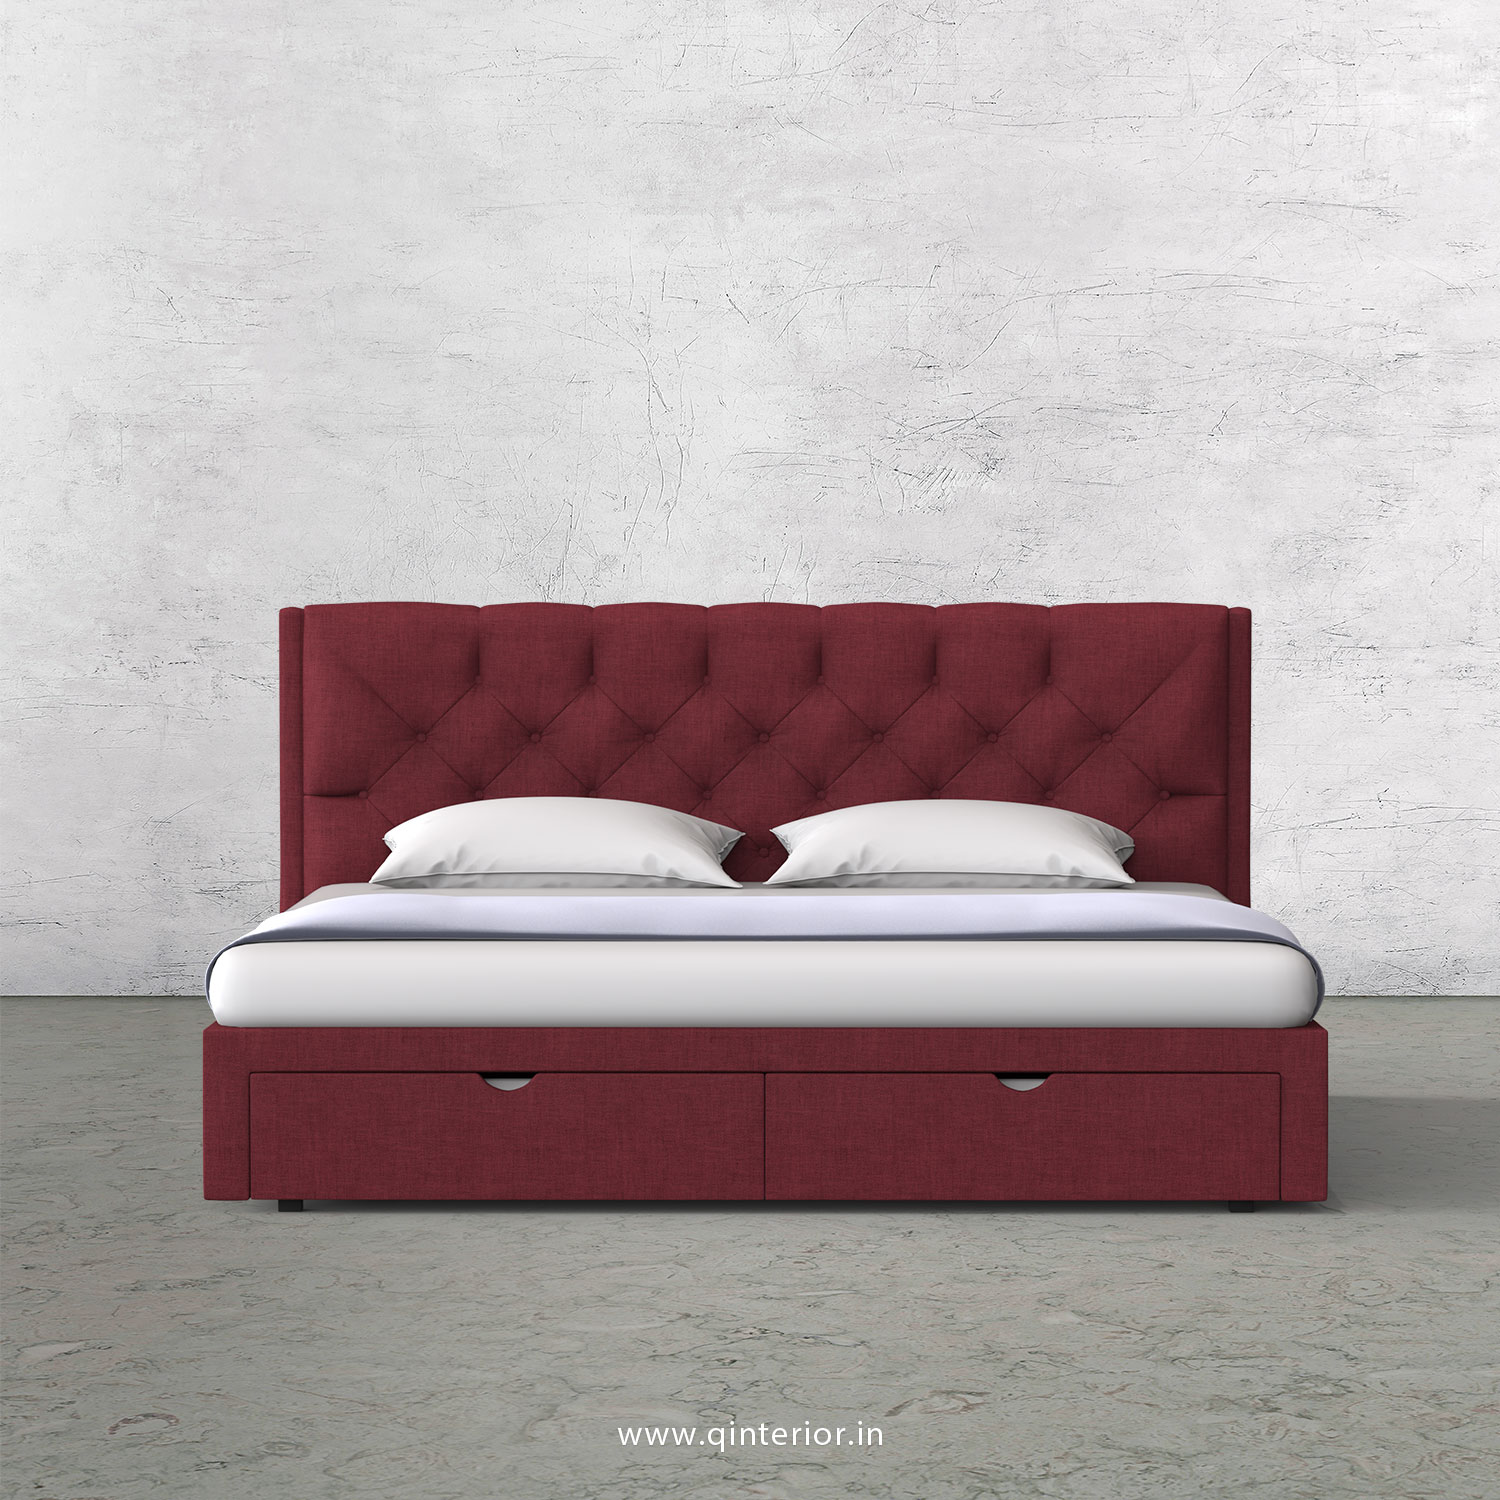 Scorpius King Size Storage Bed in Cotton Plain - KBD001 CP24